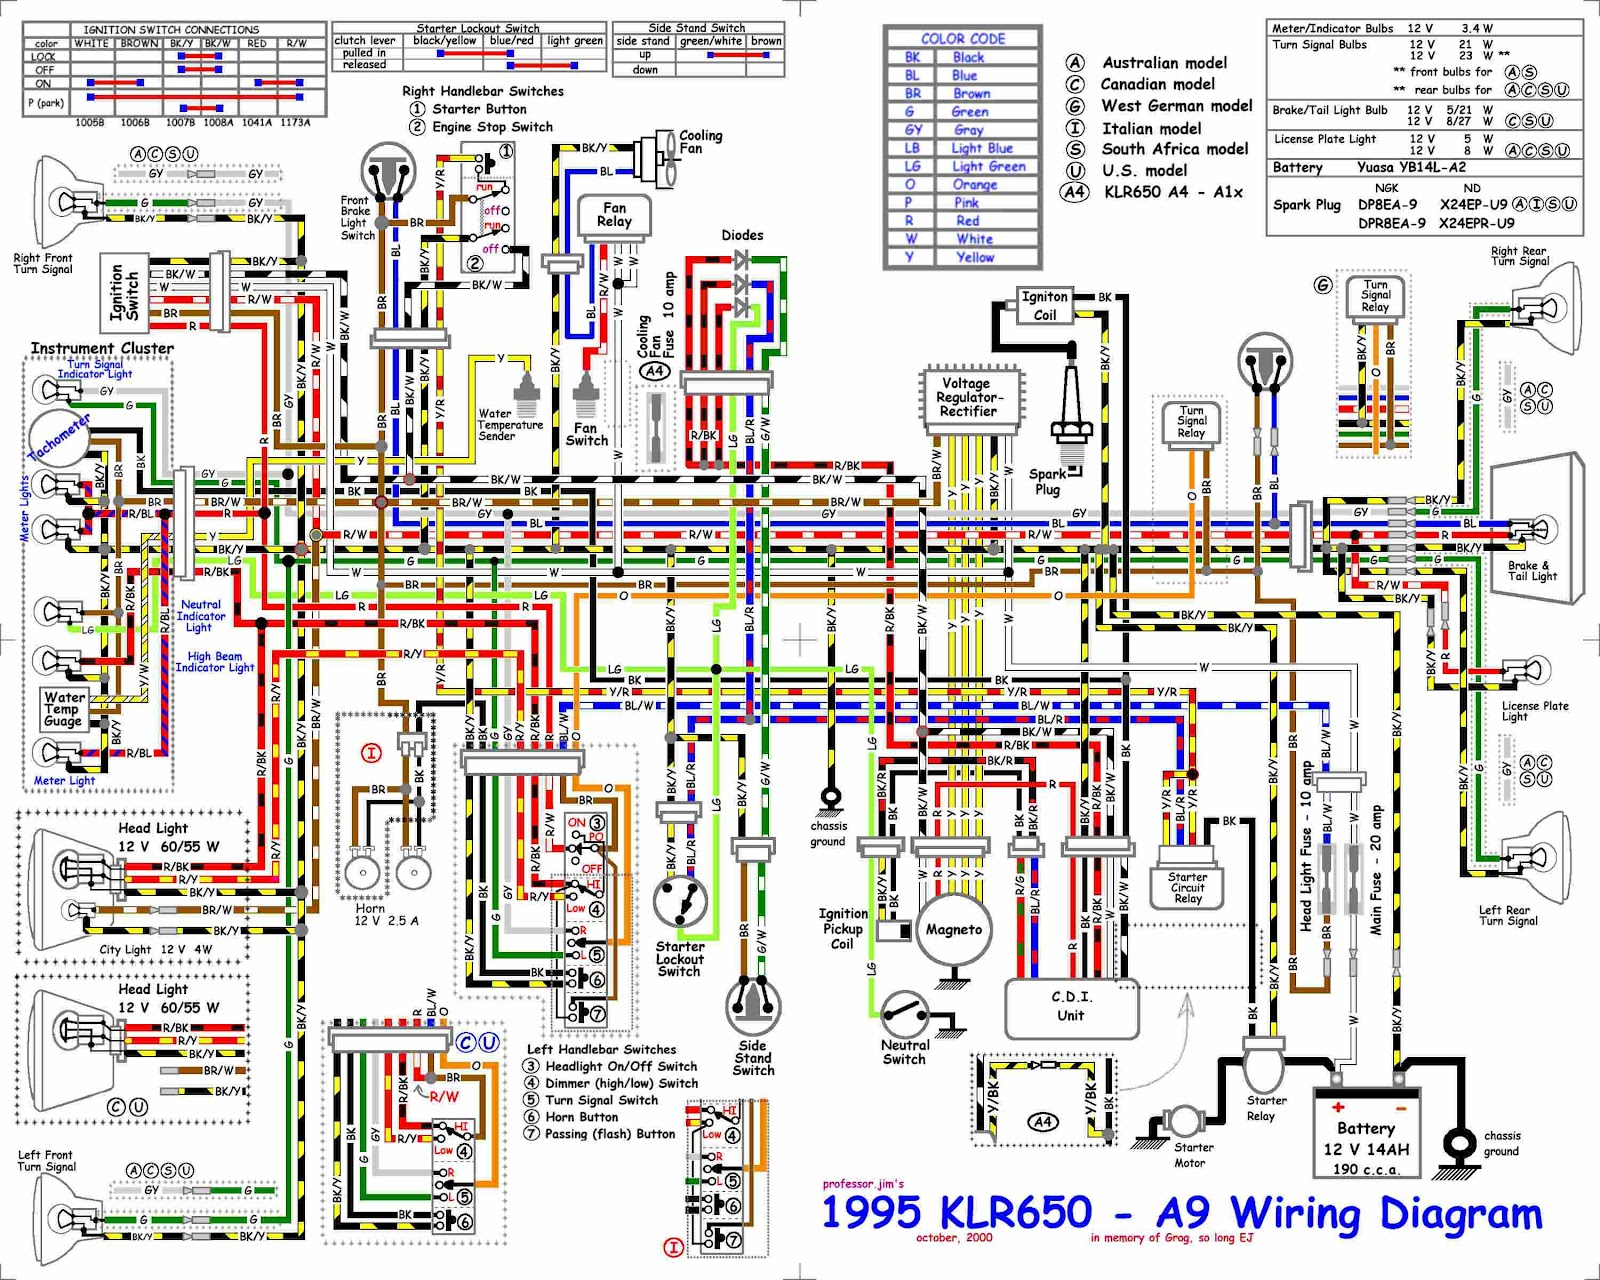 wiring diagram for motorcycle 120 volt plug kawasaki klr650 a9 1995 electrical